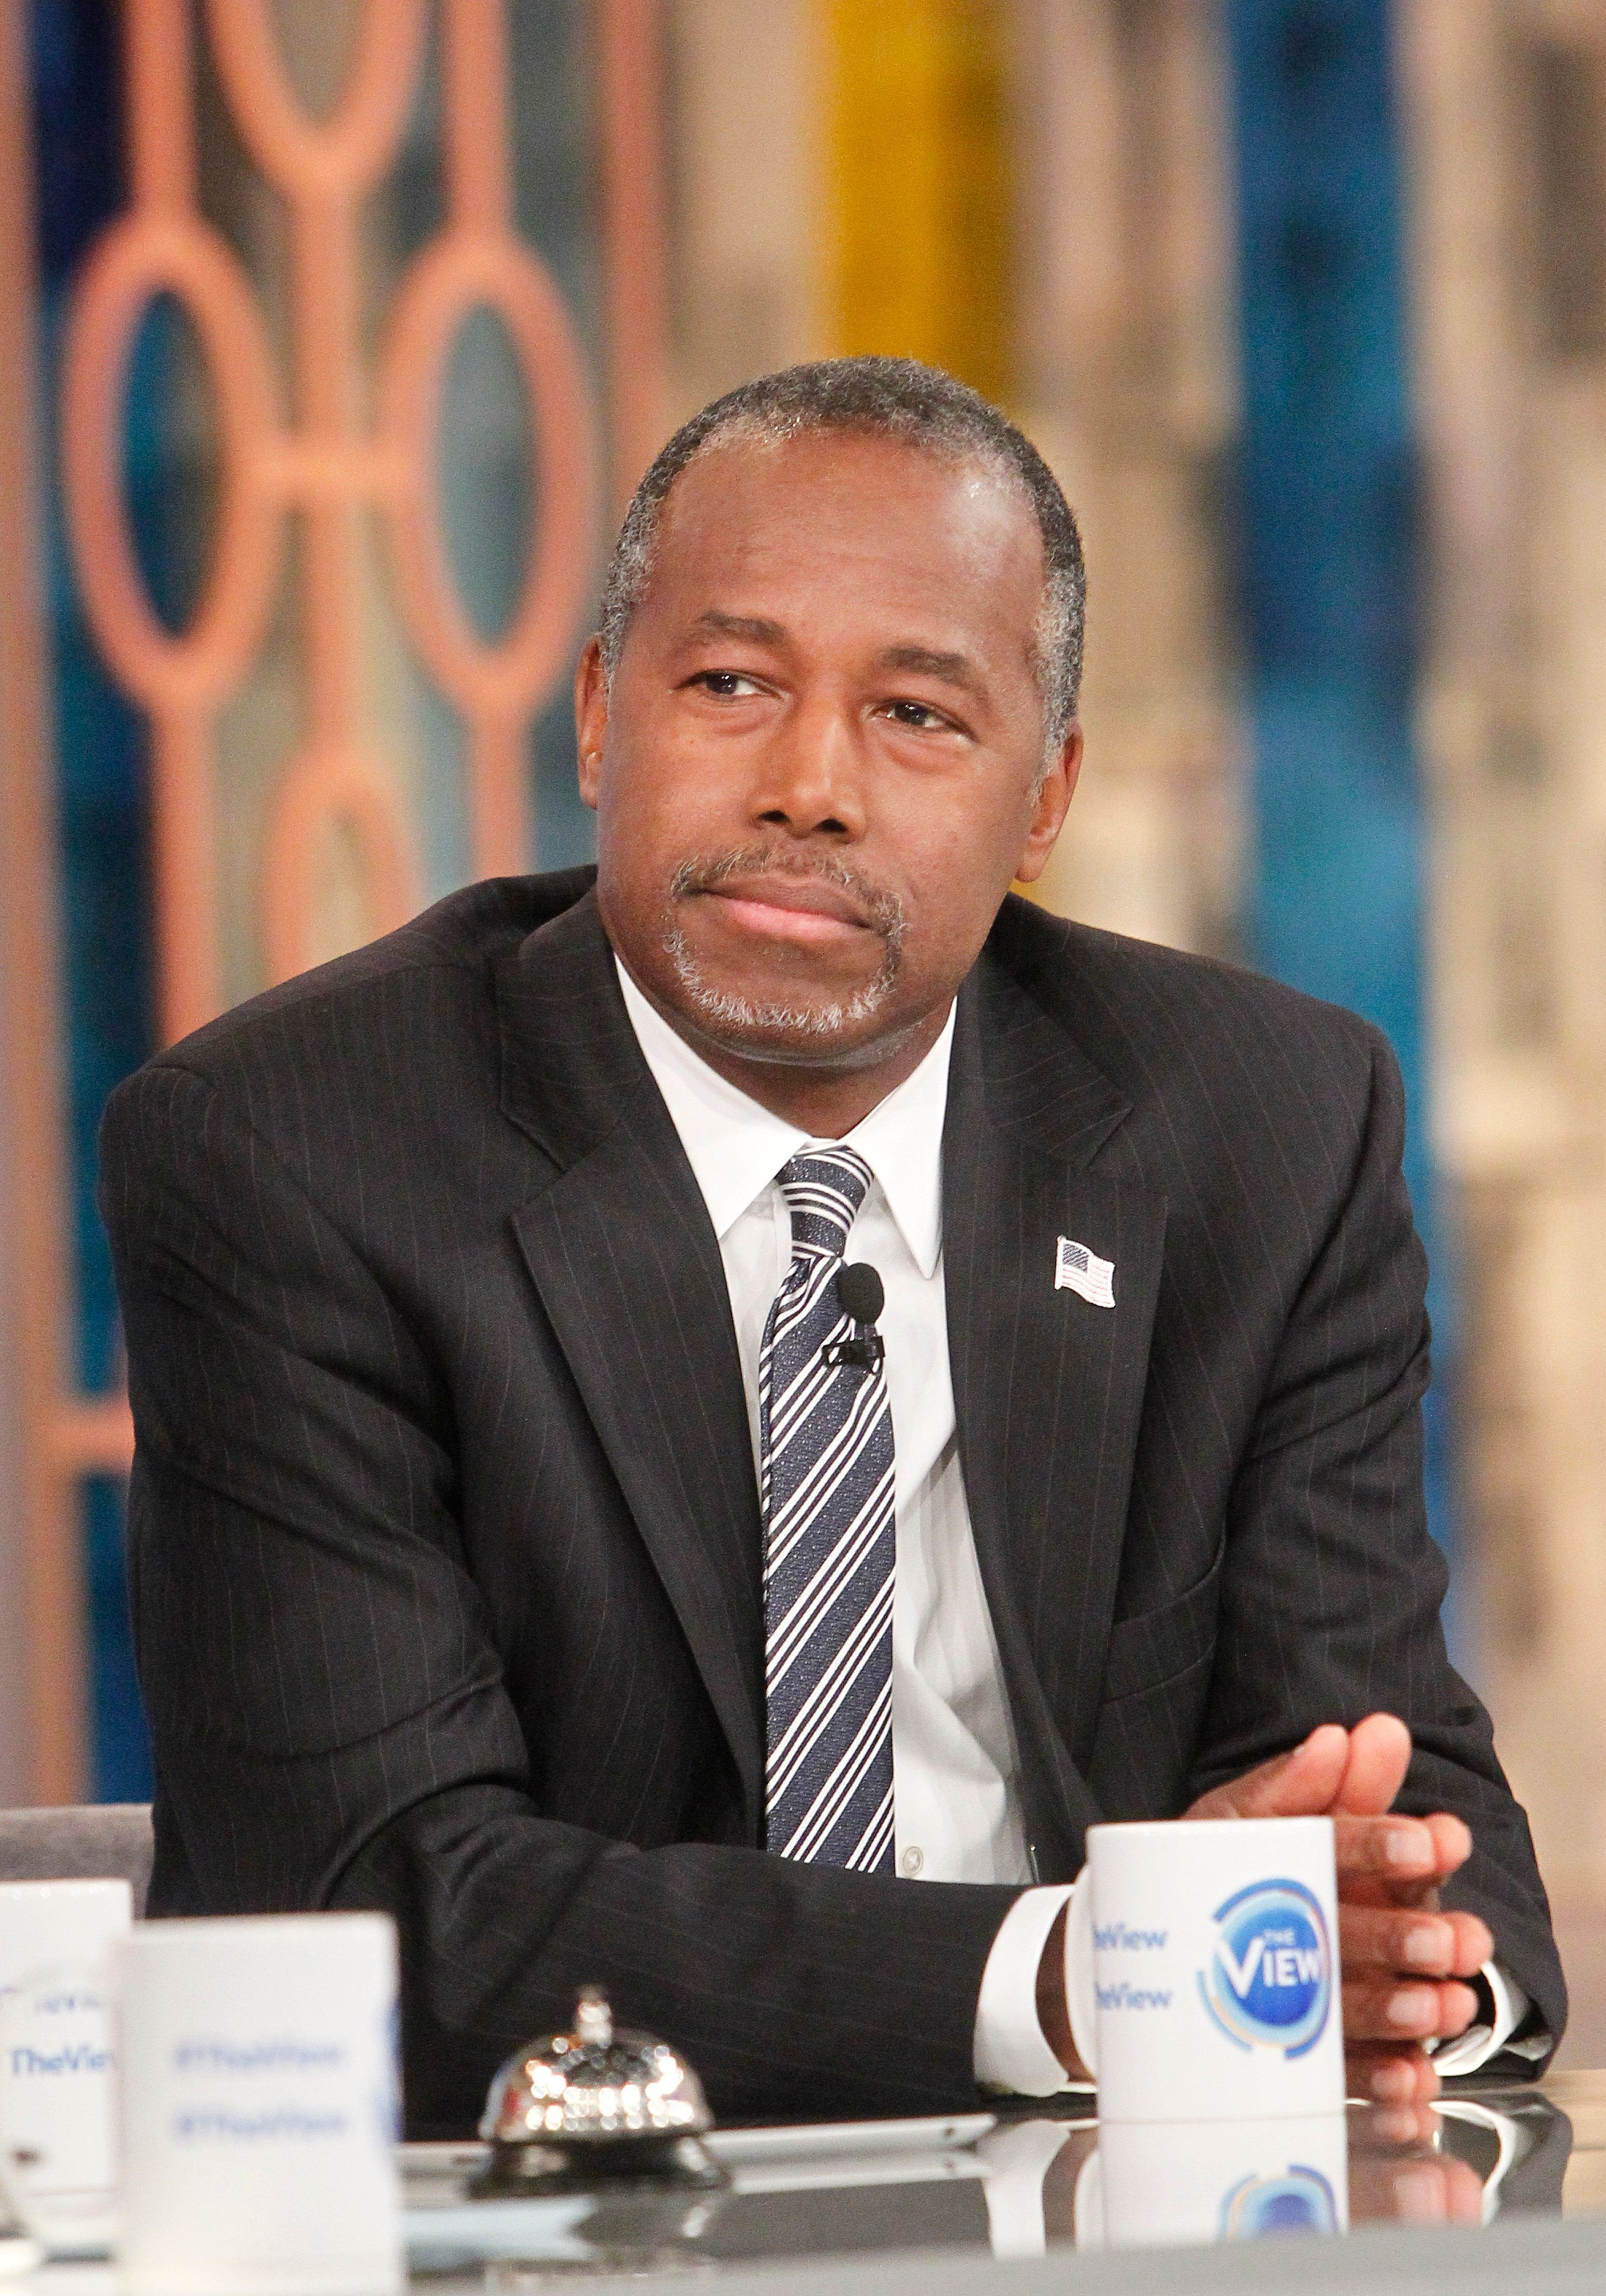 Ben Carson In Six-Minute Squirm-Fest Over Endorsing Racist